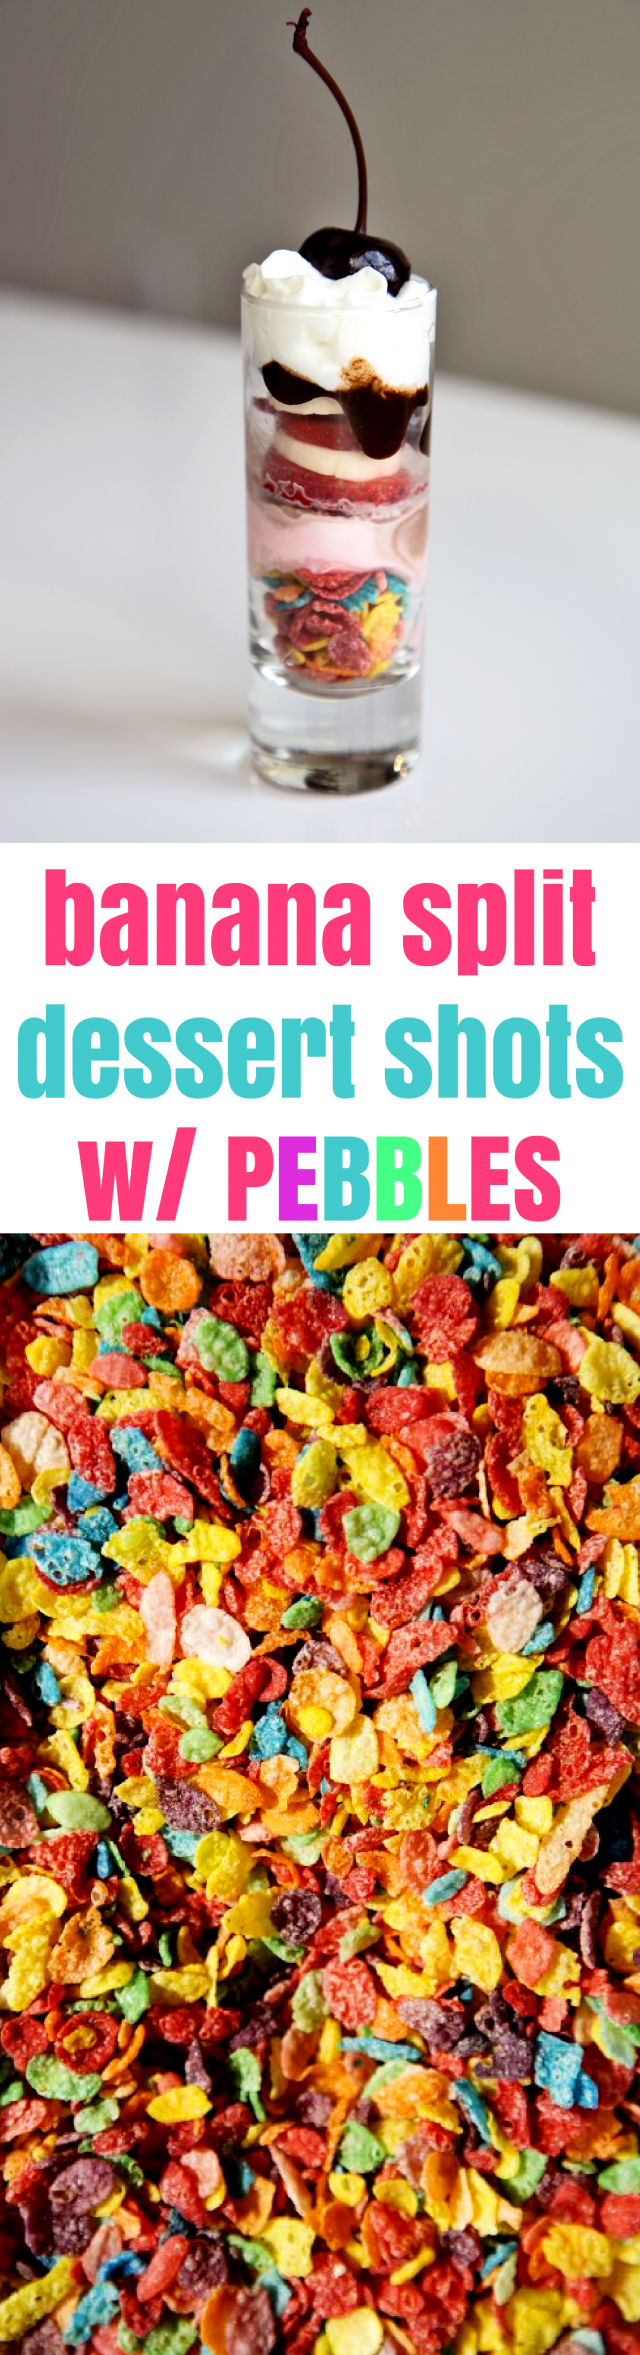 Banana Split Dessert Shots with Fruity Pebbles Recipe - these adorable banana split shots that I created that are small enough to let you indulge your sweet tooth with that perfect Pebbles crunch! These colorful dessert shots are perfect for kid or adult parties and once you try one recipe with Pebbles, you'll be inspired to try more.